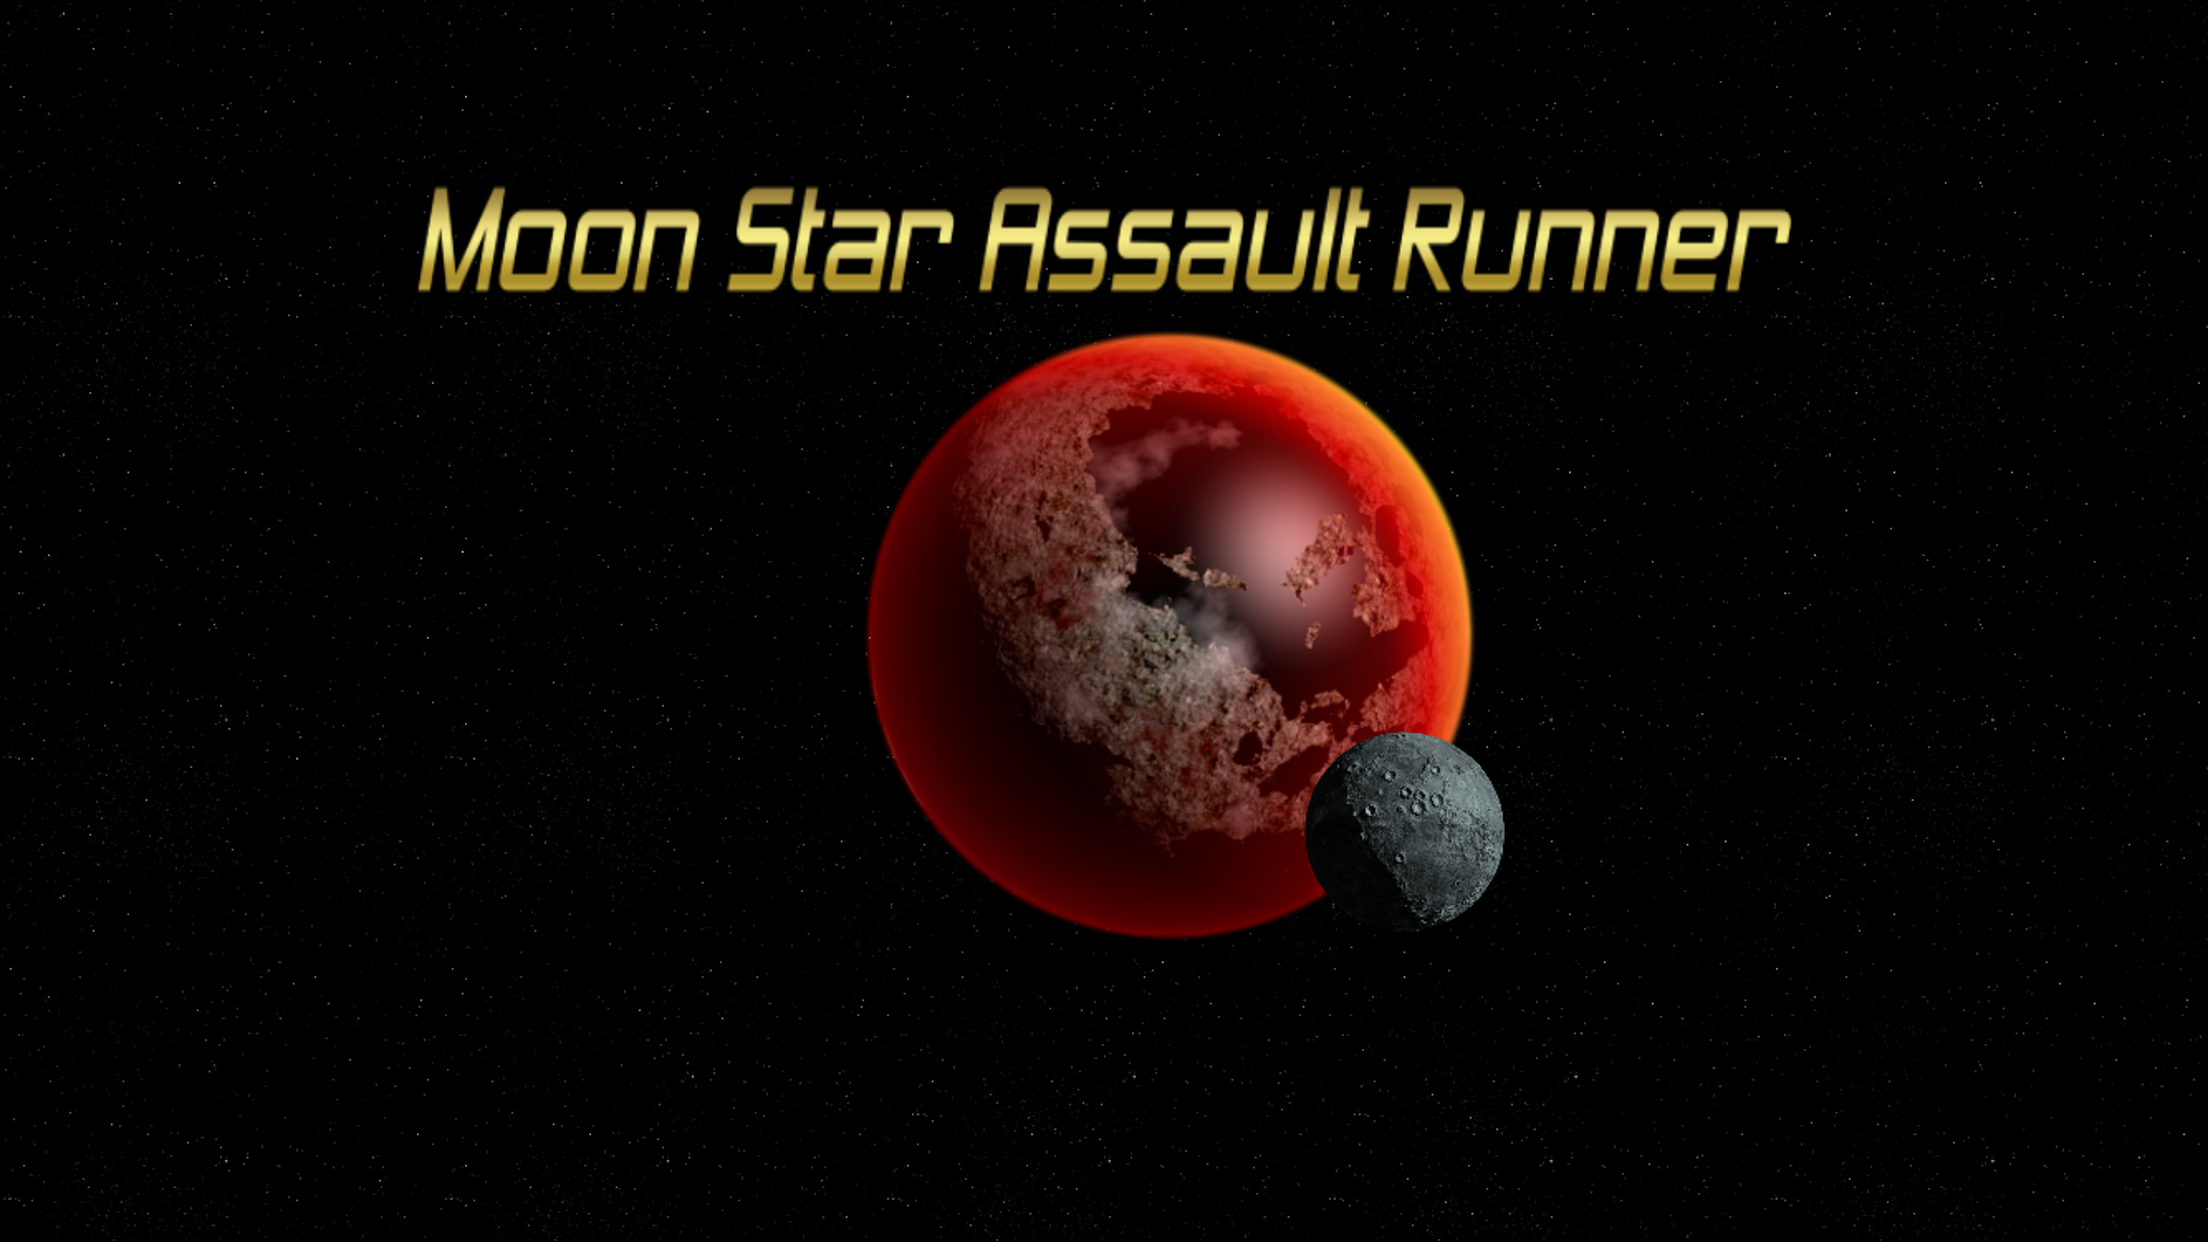 MoonStar Assault Runner